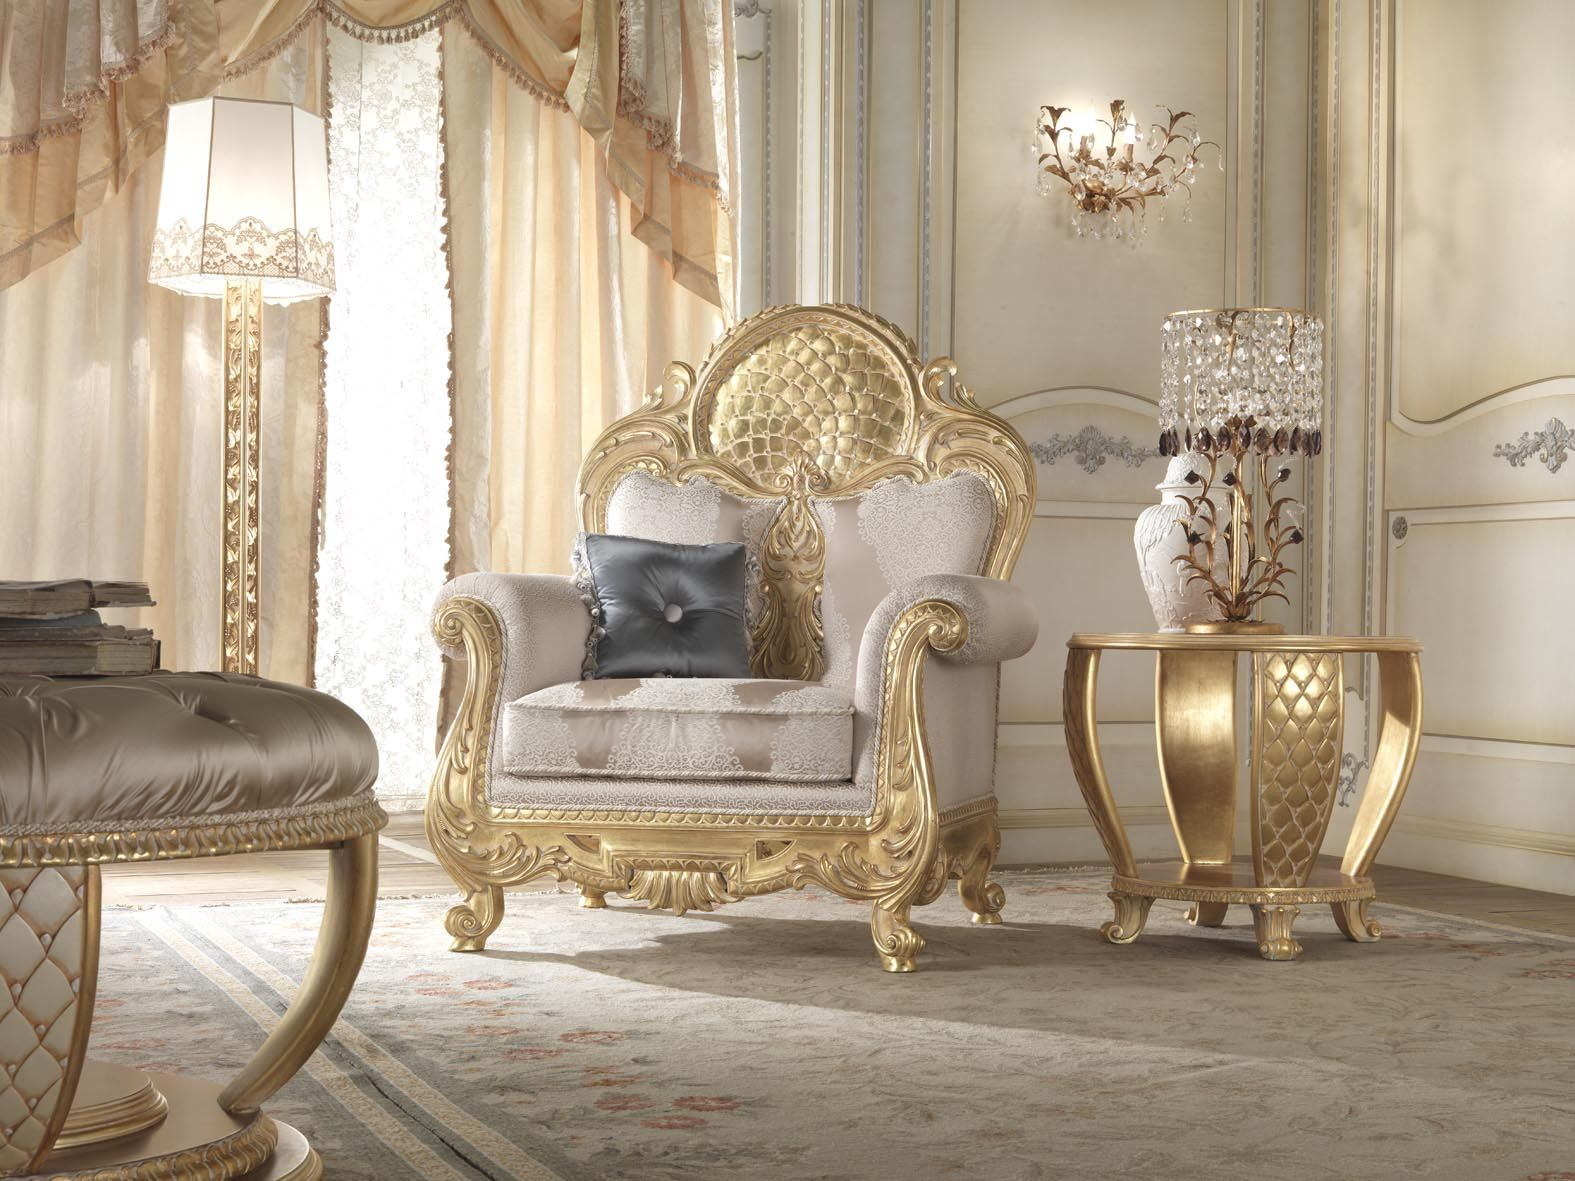 Classic Italian Furniture Top And Best Companies In Italy Egypt And France Classical Interior Classic Furniture Design Luxury Seating